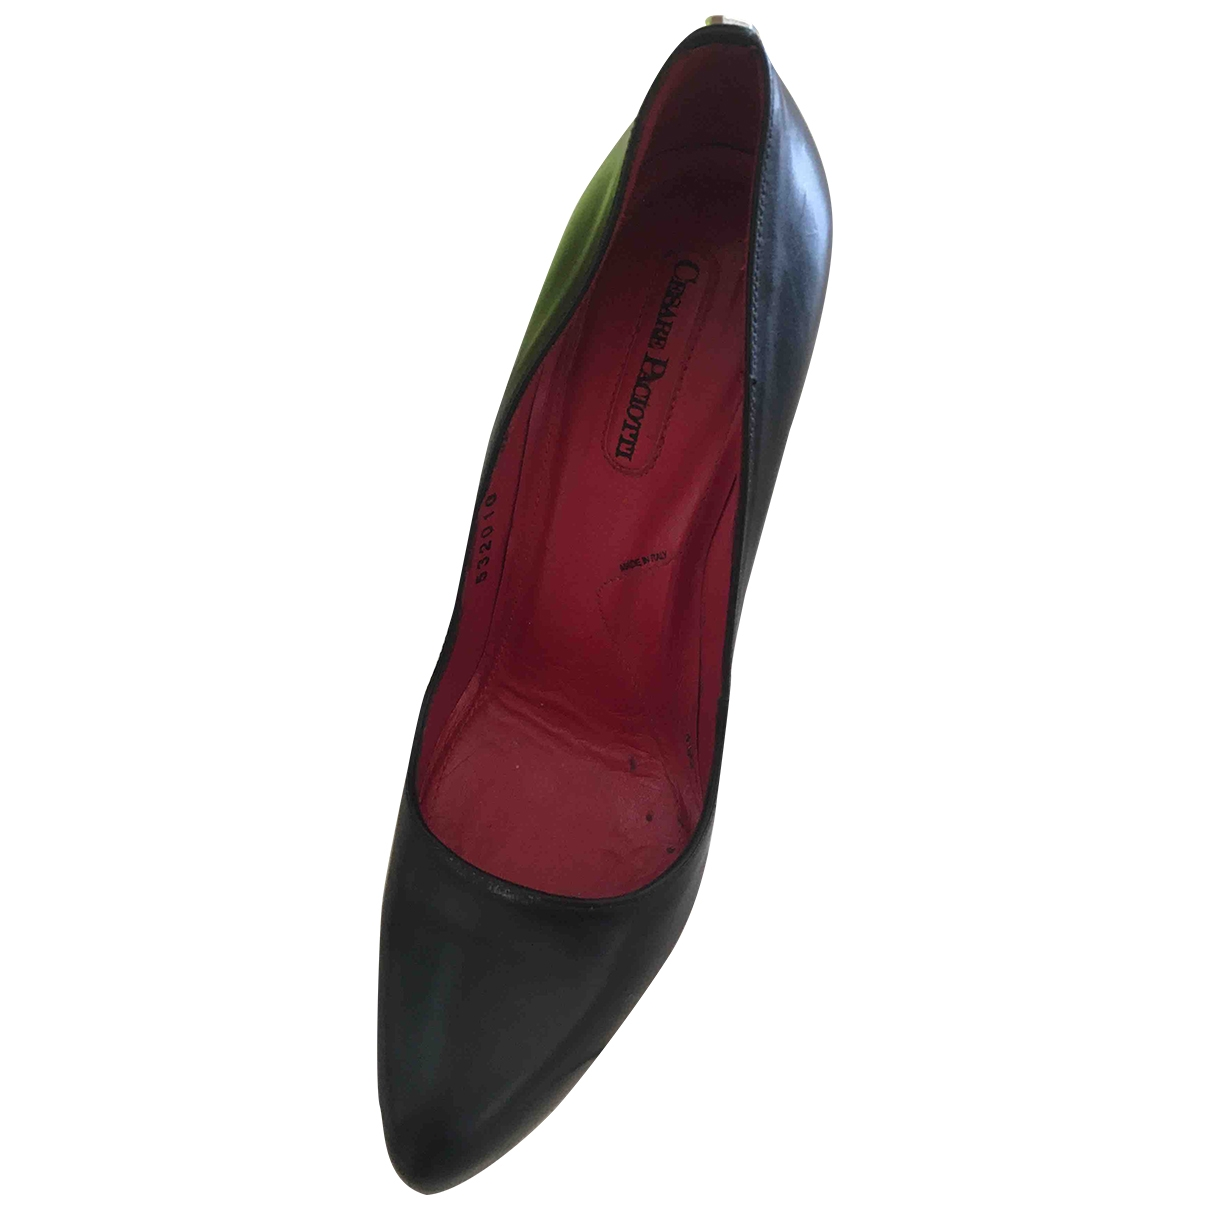 Cesare Paciotti \N Black Leather Heels for Women 36 EU